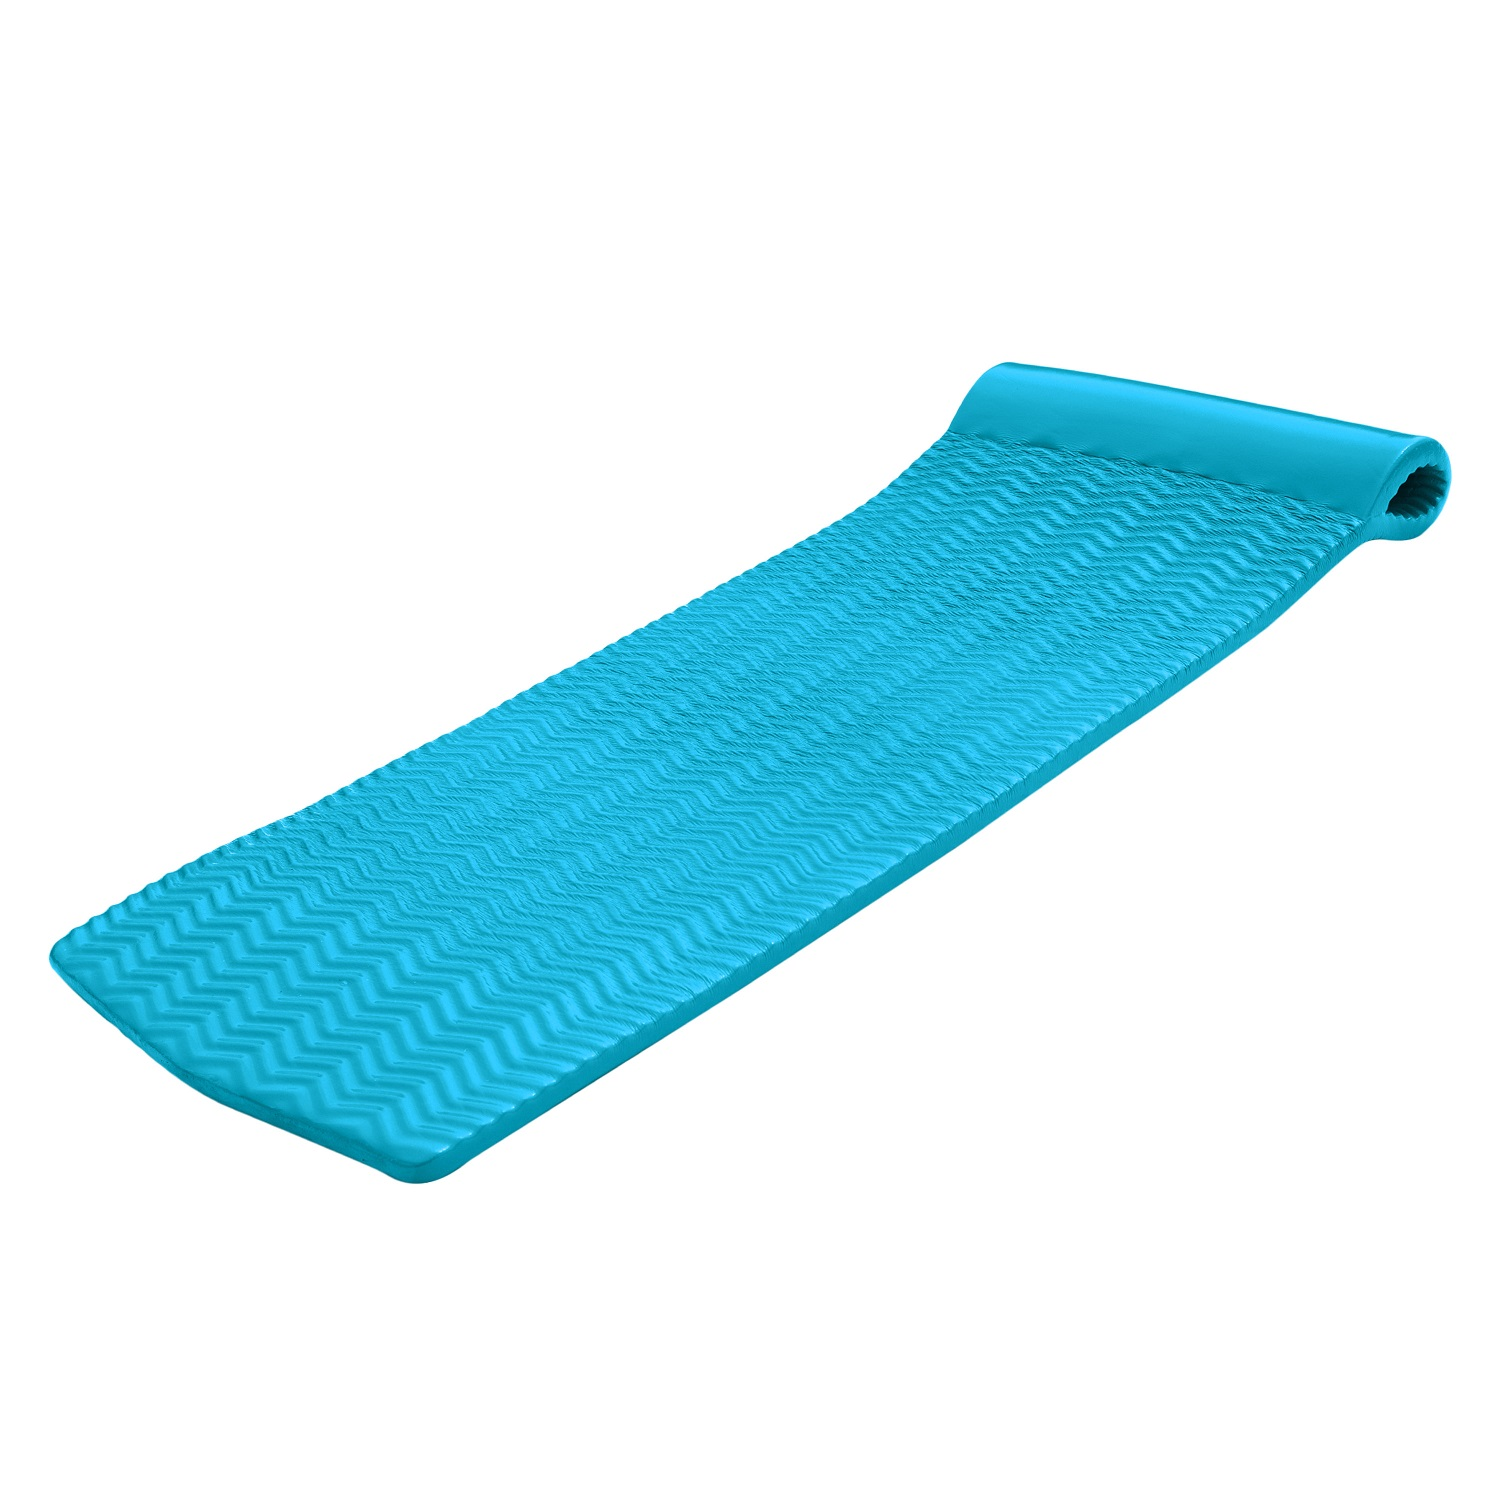 TRC Serenity Pool Float Tropical Teal